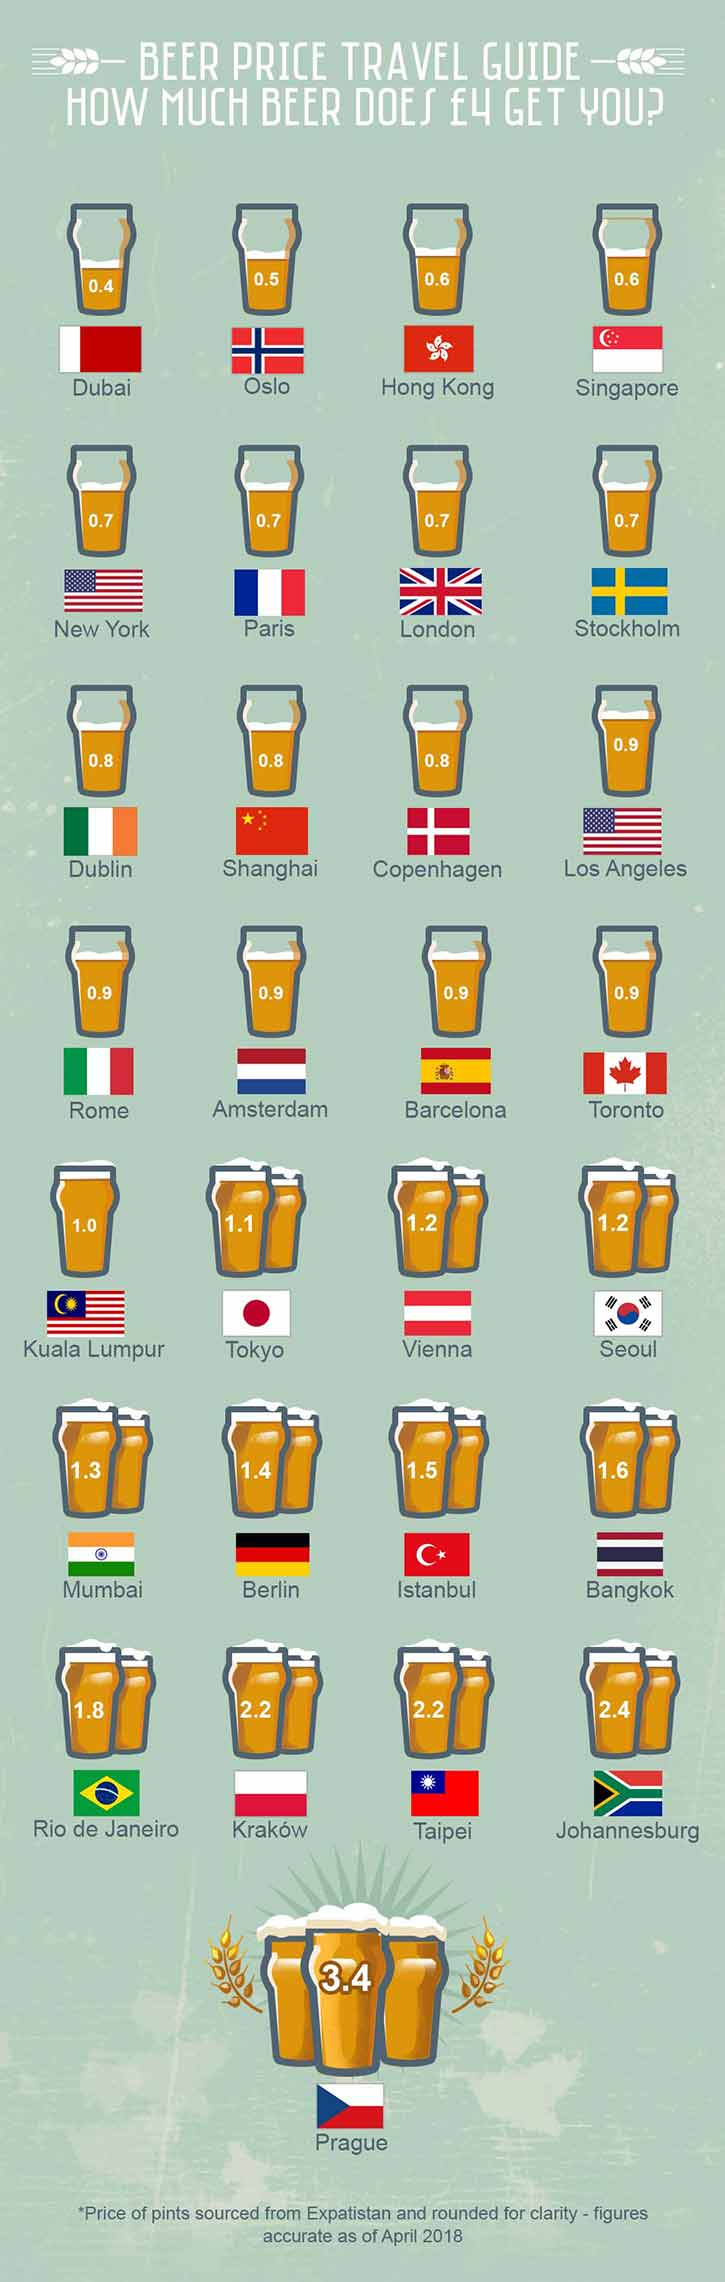 Beer Travel Guide